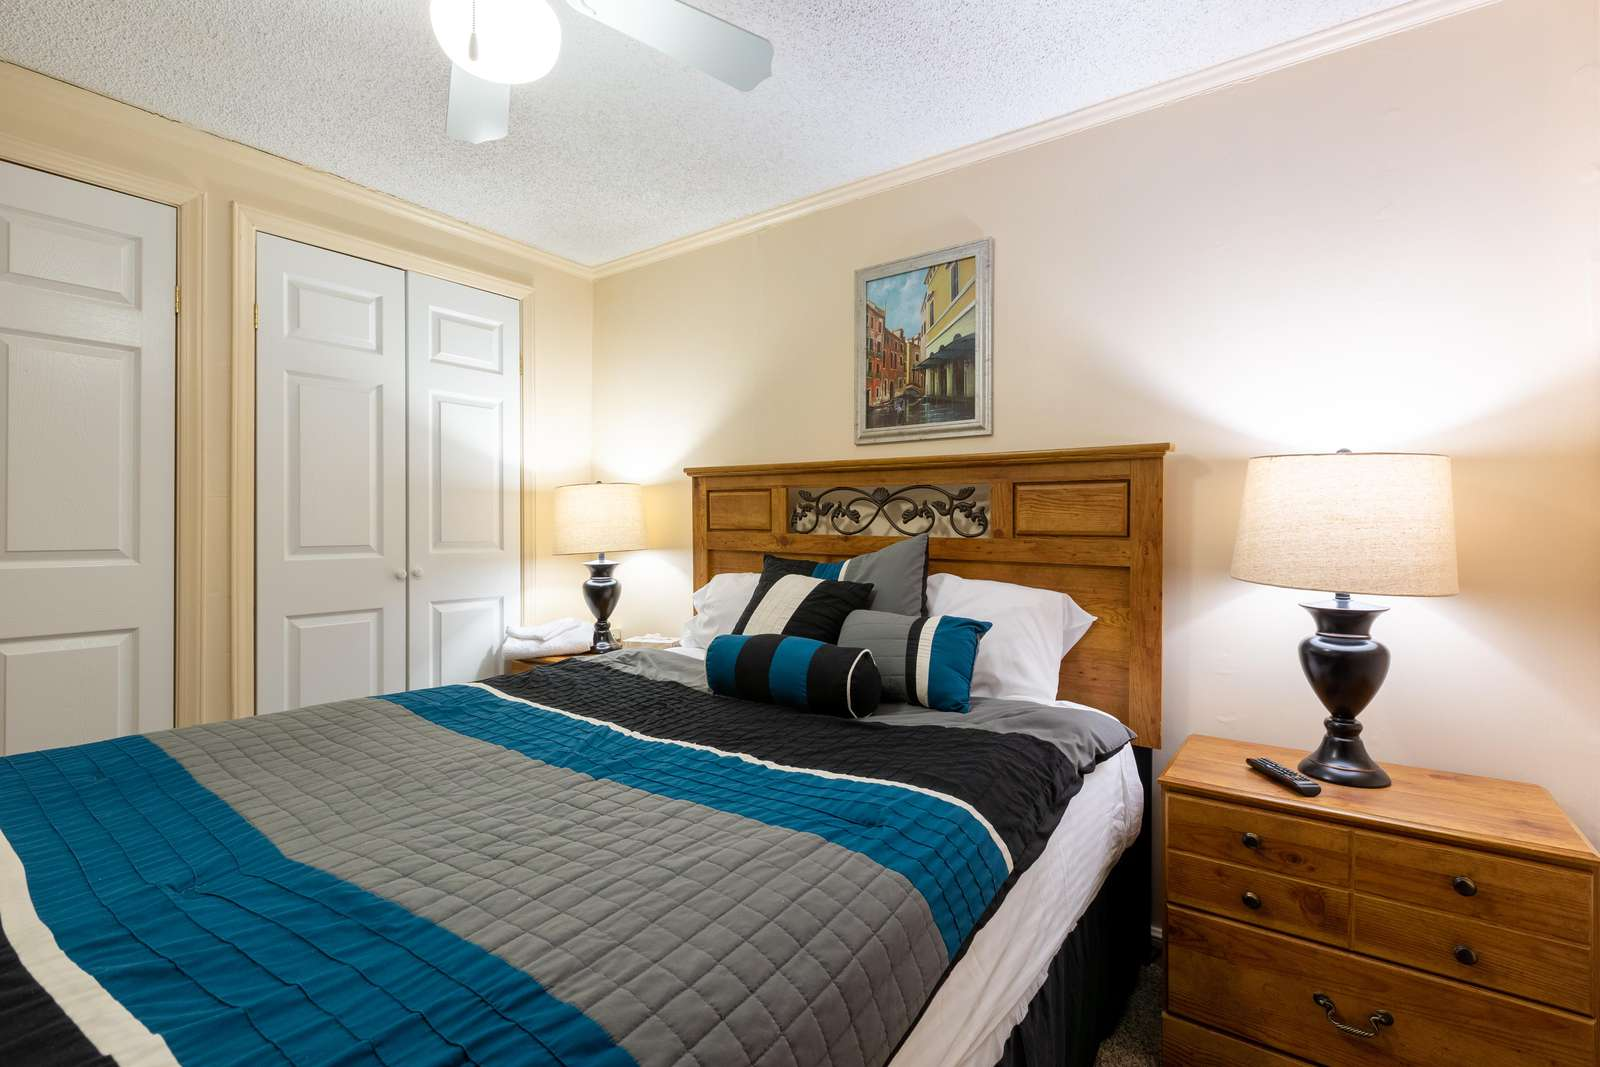 Has an elegant bedroom for you to relax and sleep well